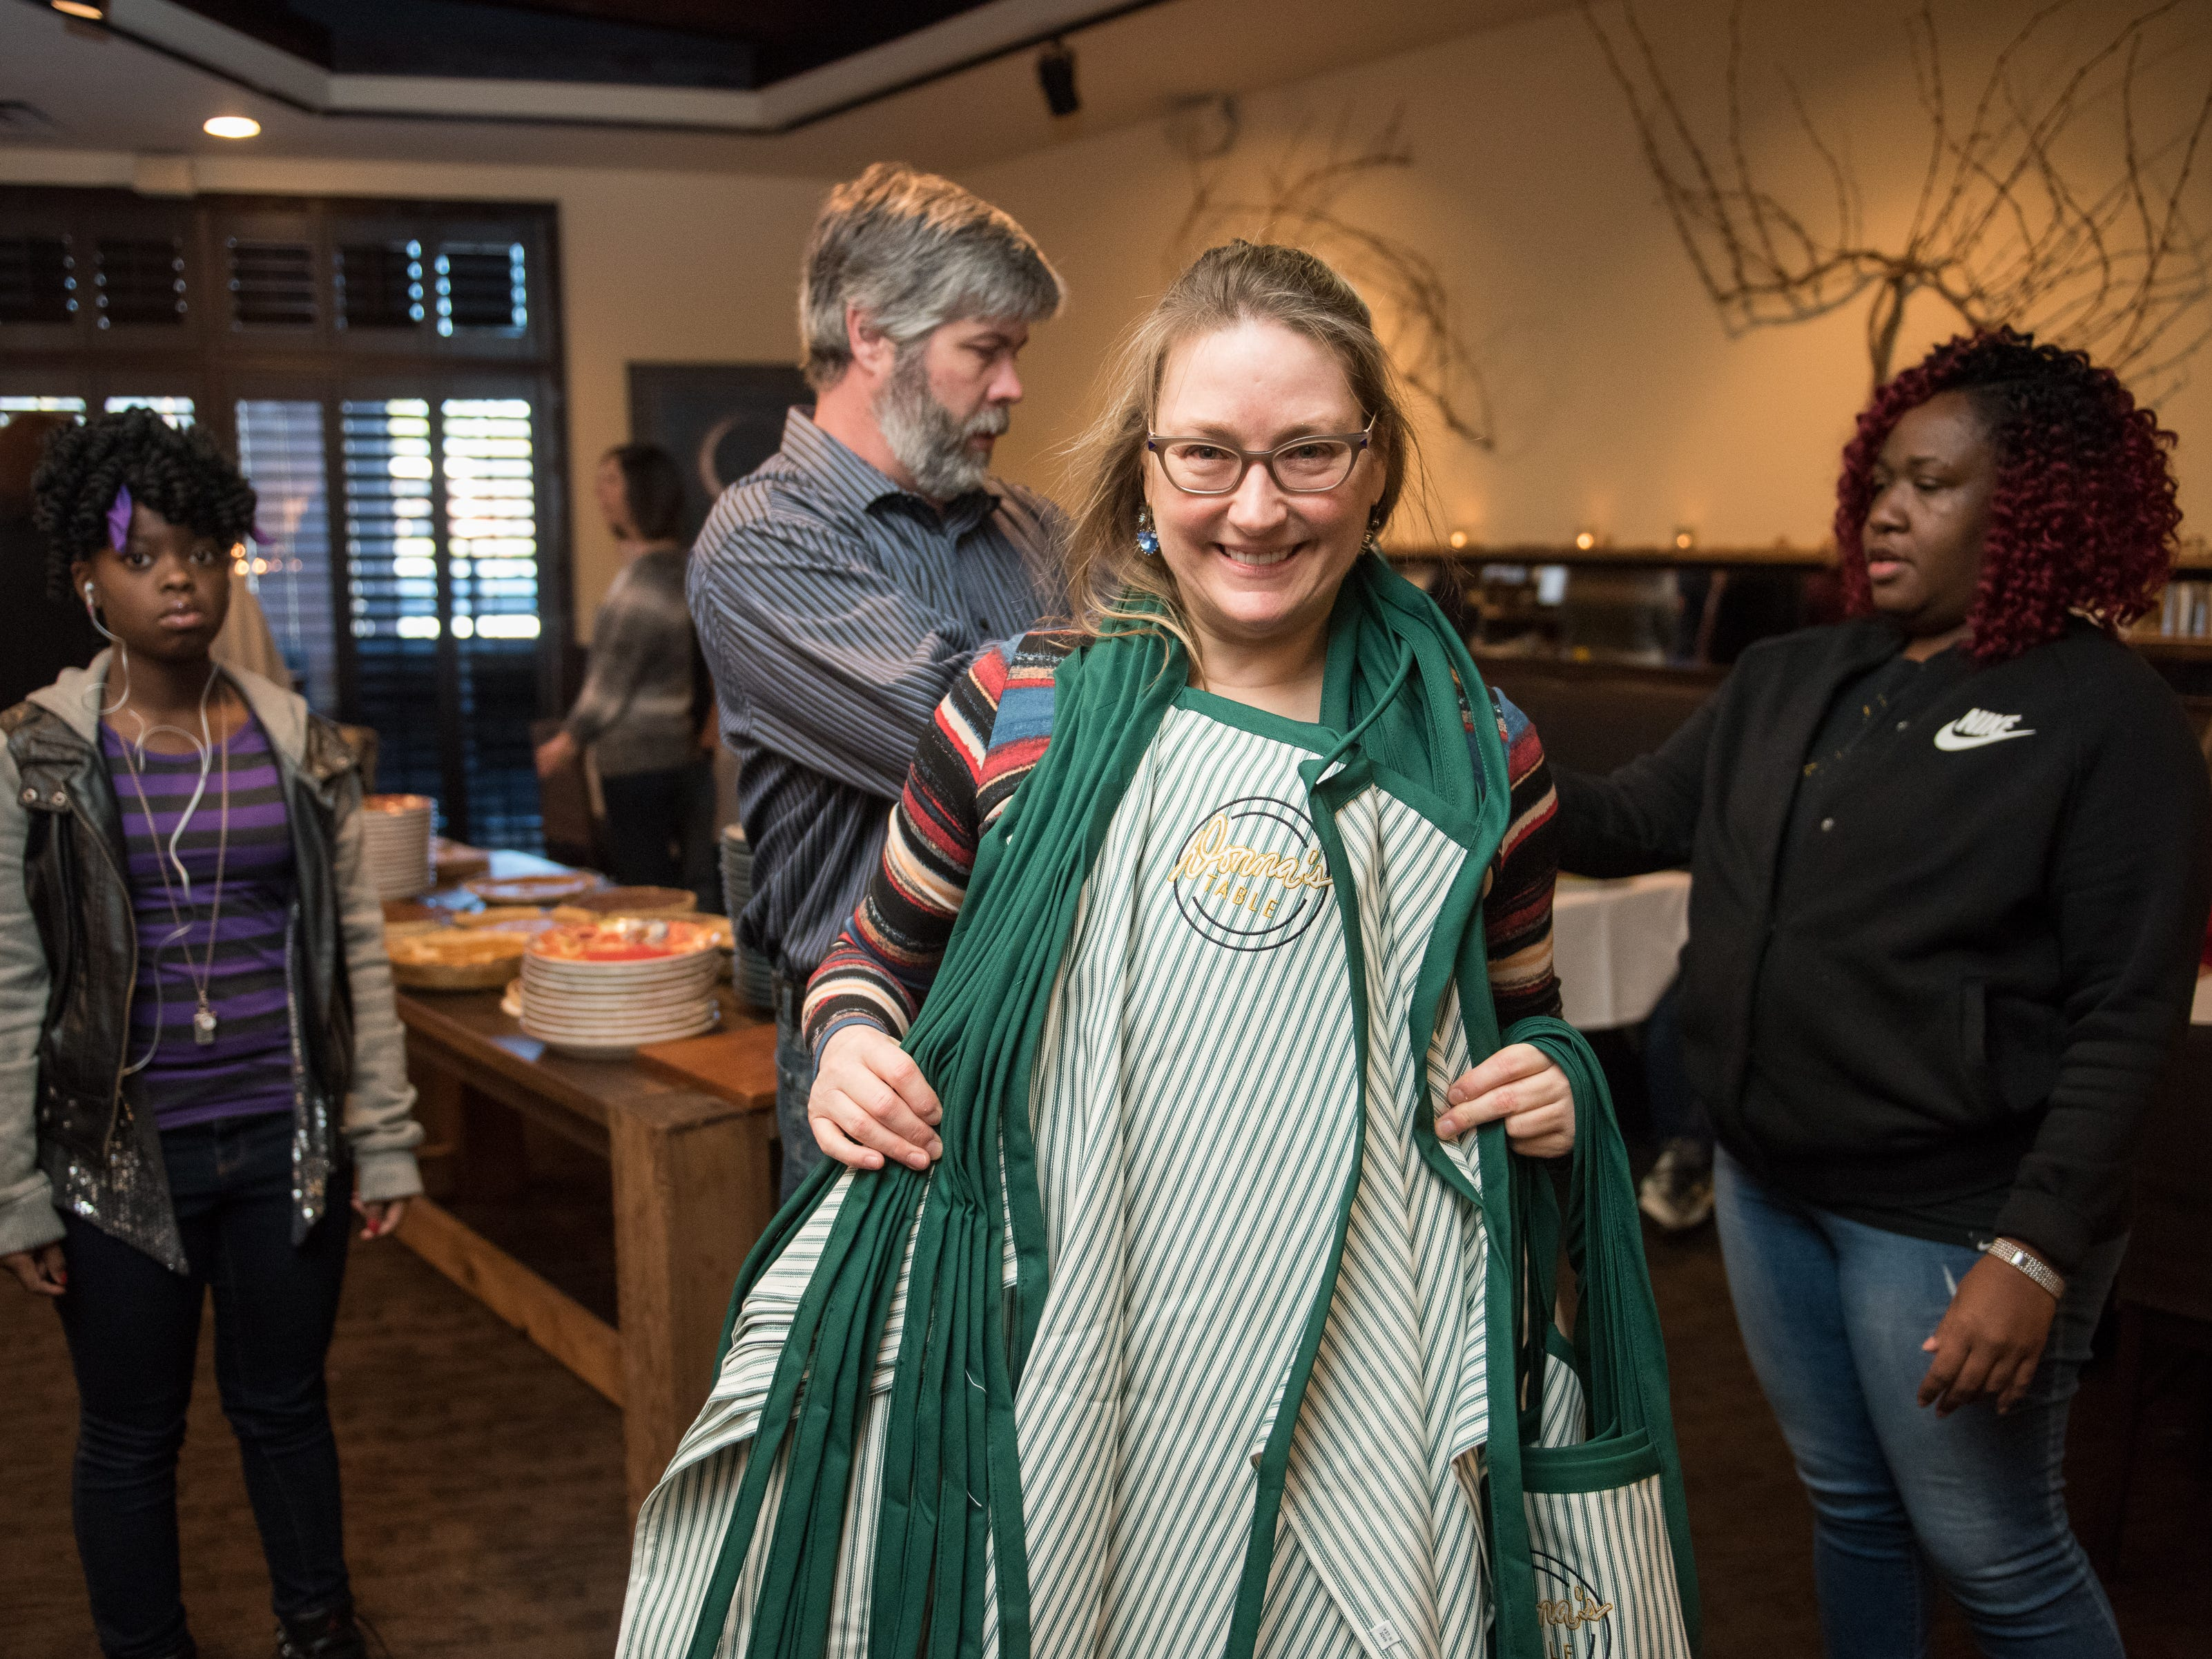 Glenda Hastings, owner of Napa Cafe, recruits friends and customers to help her serve a turkey dinner to the homeless at her restaurant every Thanksgiving.  She has named the event Donna's Table in honor of her mother.